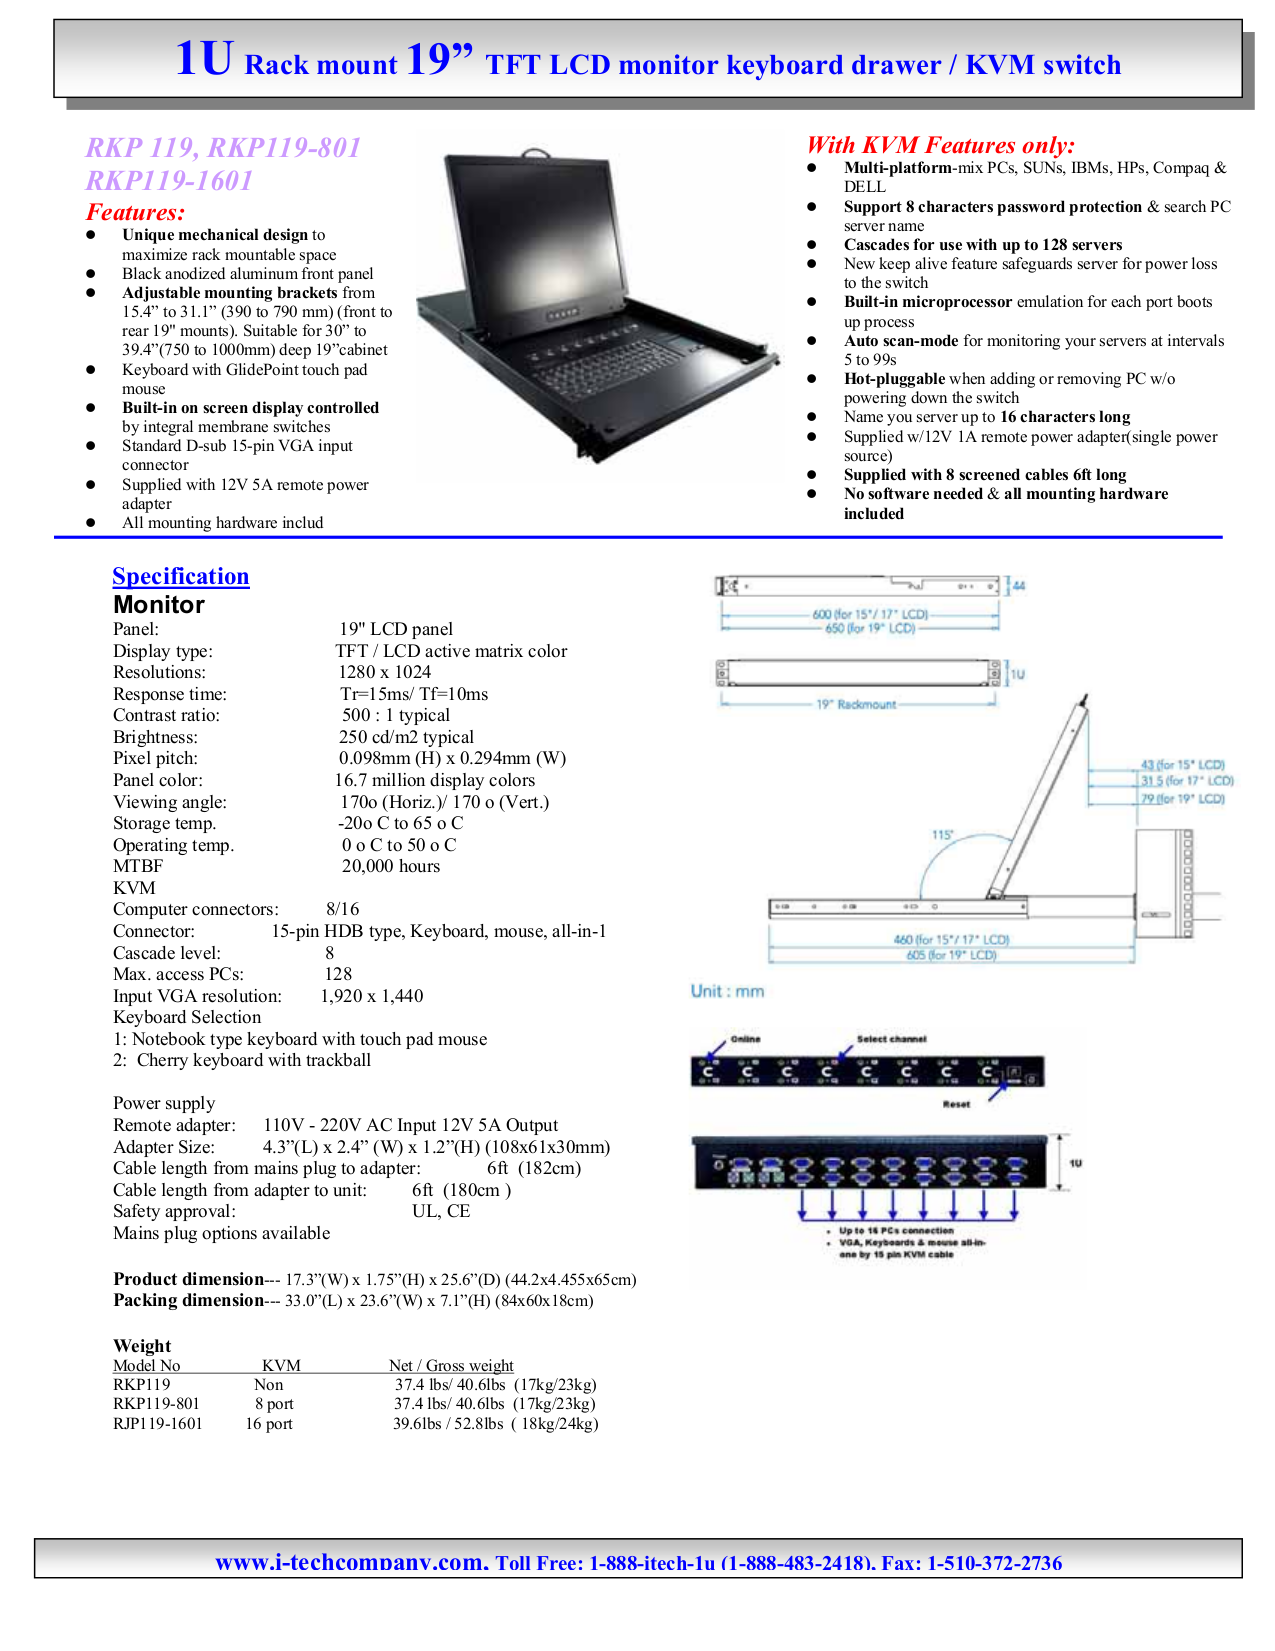 pdf for I-Tech Other RKP119-1601 Keyboard Drawers manual